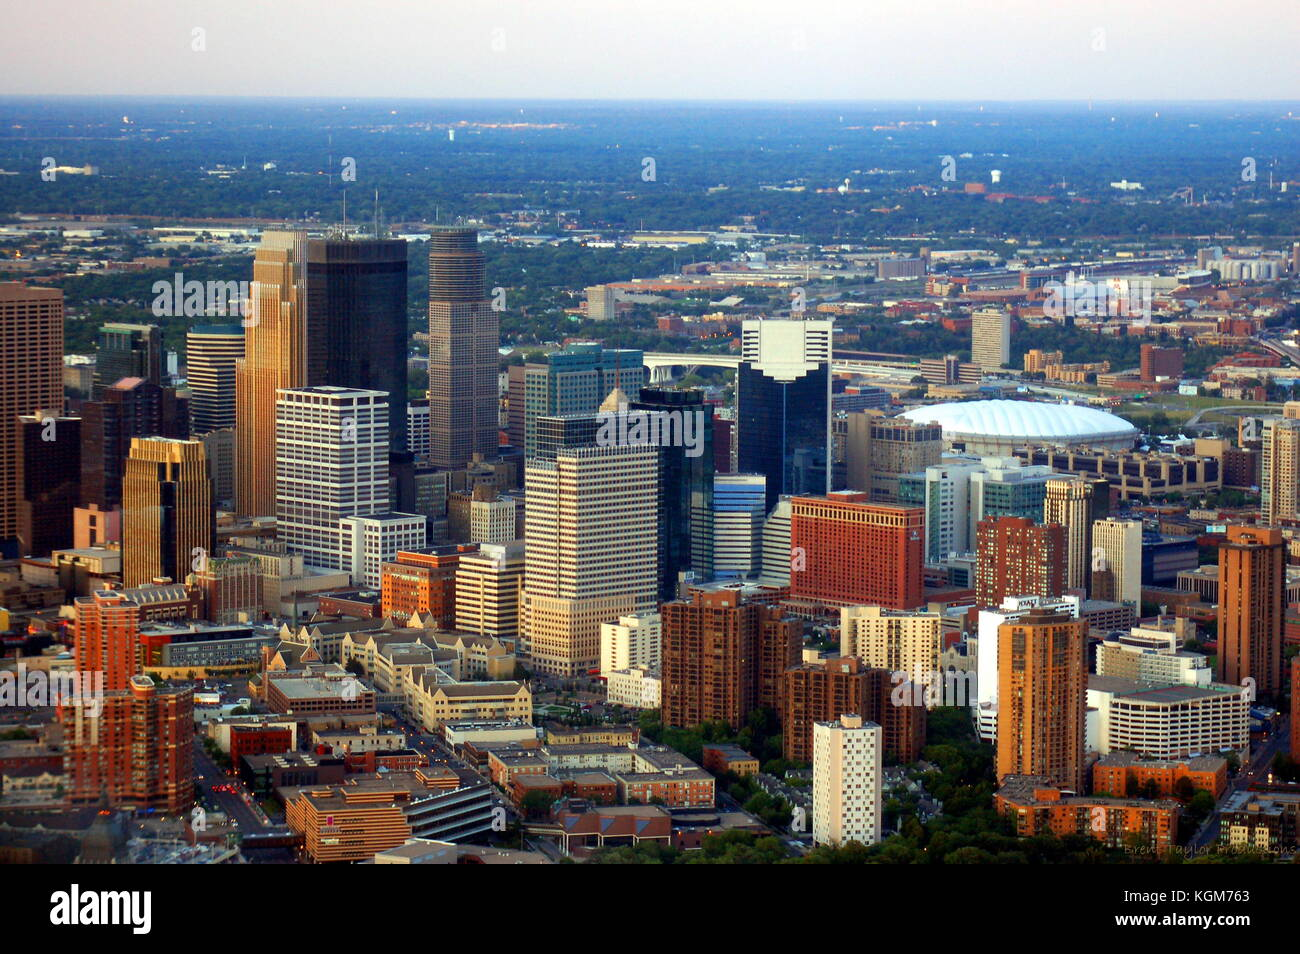 Aerial view of downtown Minneapolis, MN on a summer evening. - Stock Image